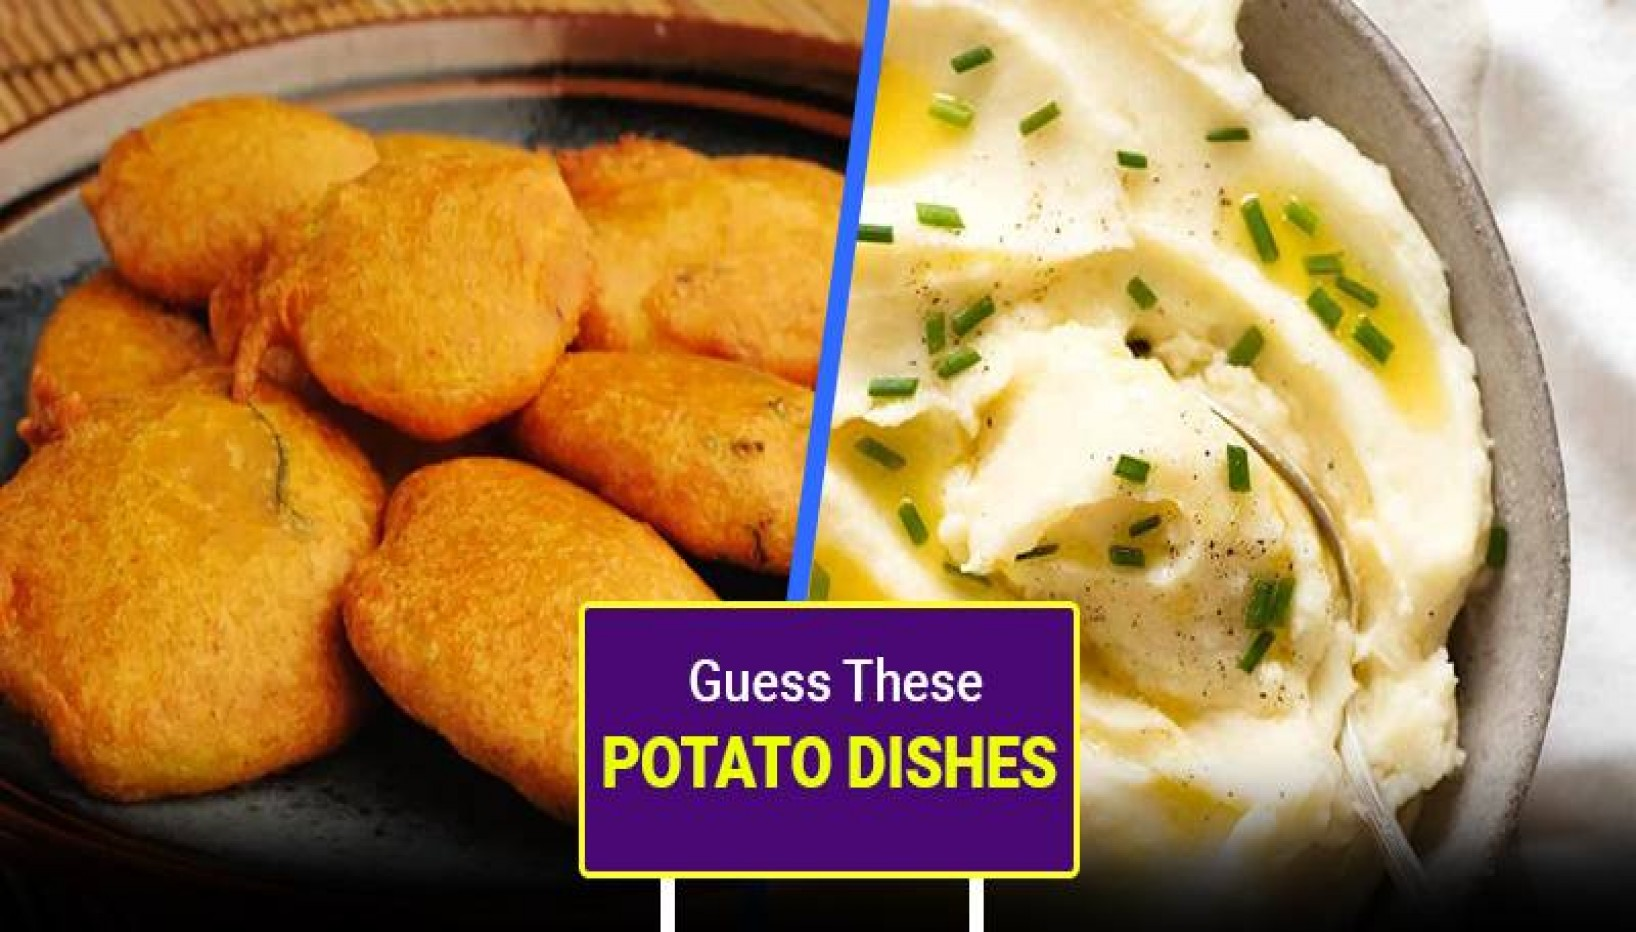 Love Potatoes? Take This Aaloo Quiz And See How Many Potato Dishes You Can Name